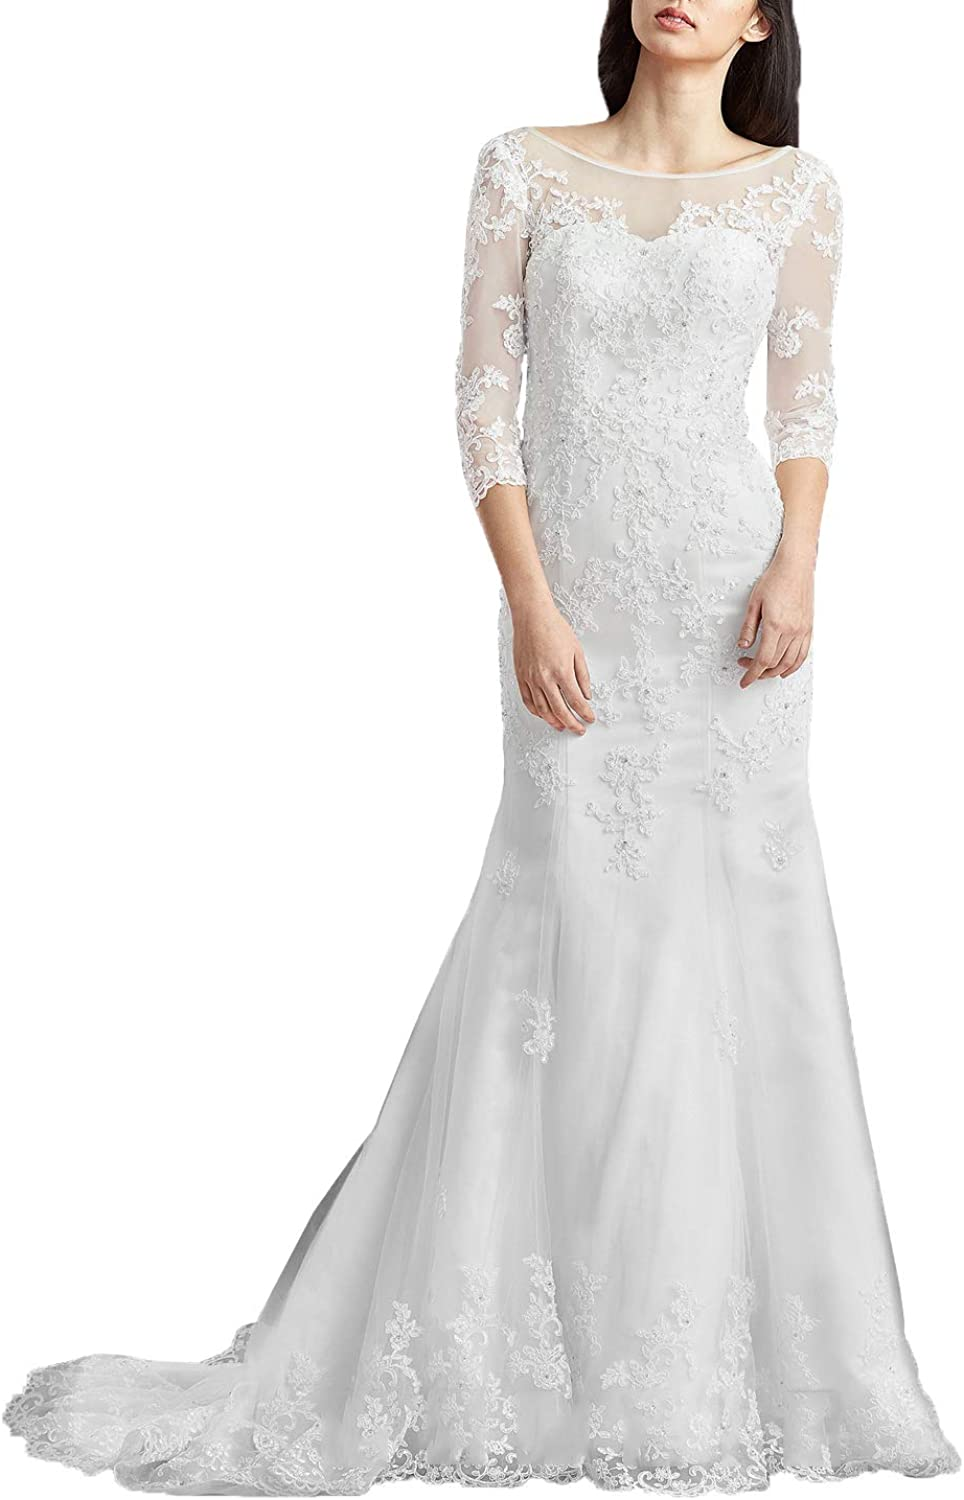 Aishanglina Women's Illusion Sweetheart Lace Appliqued Bridal Wedding Dress Evening Gown 3 4 Sleeves